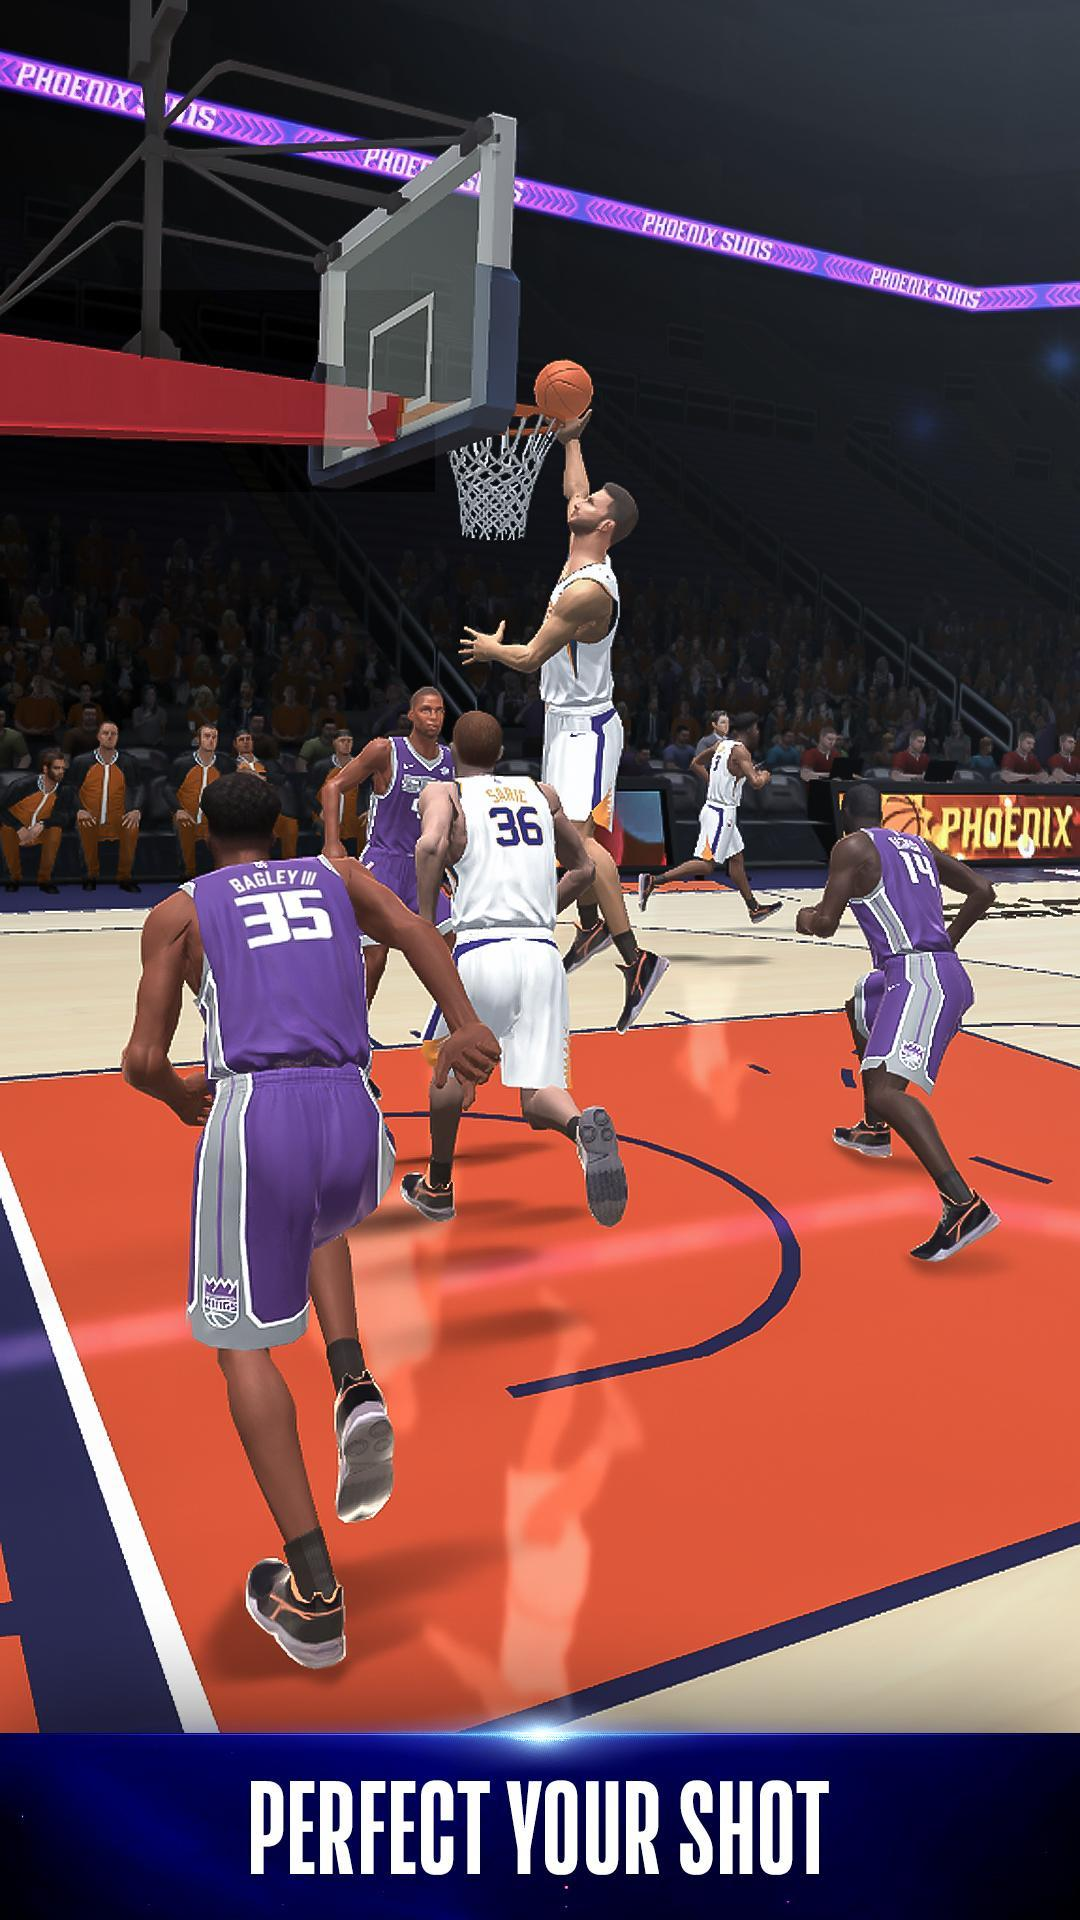 NBA NOW Mobile Basketball Game 1.5.4 Screenshot 8